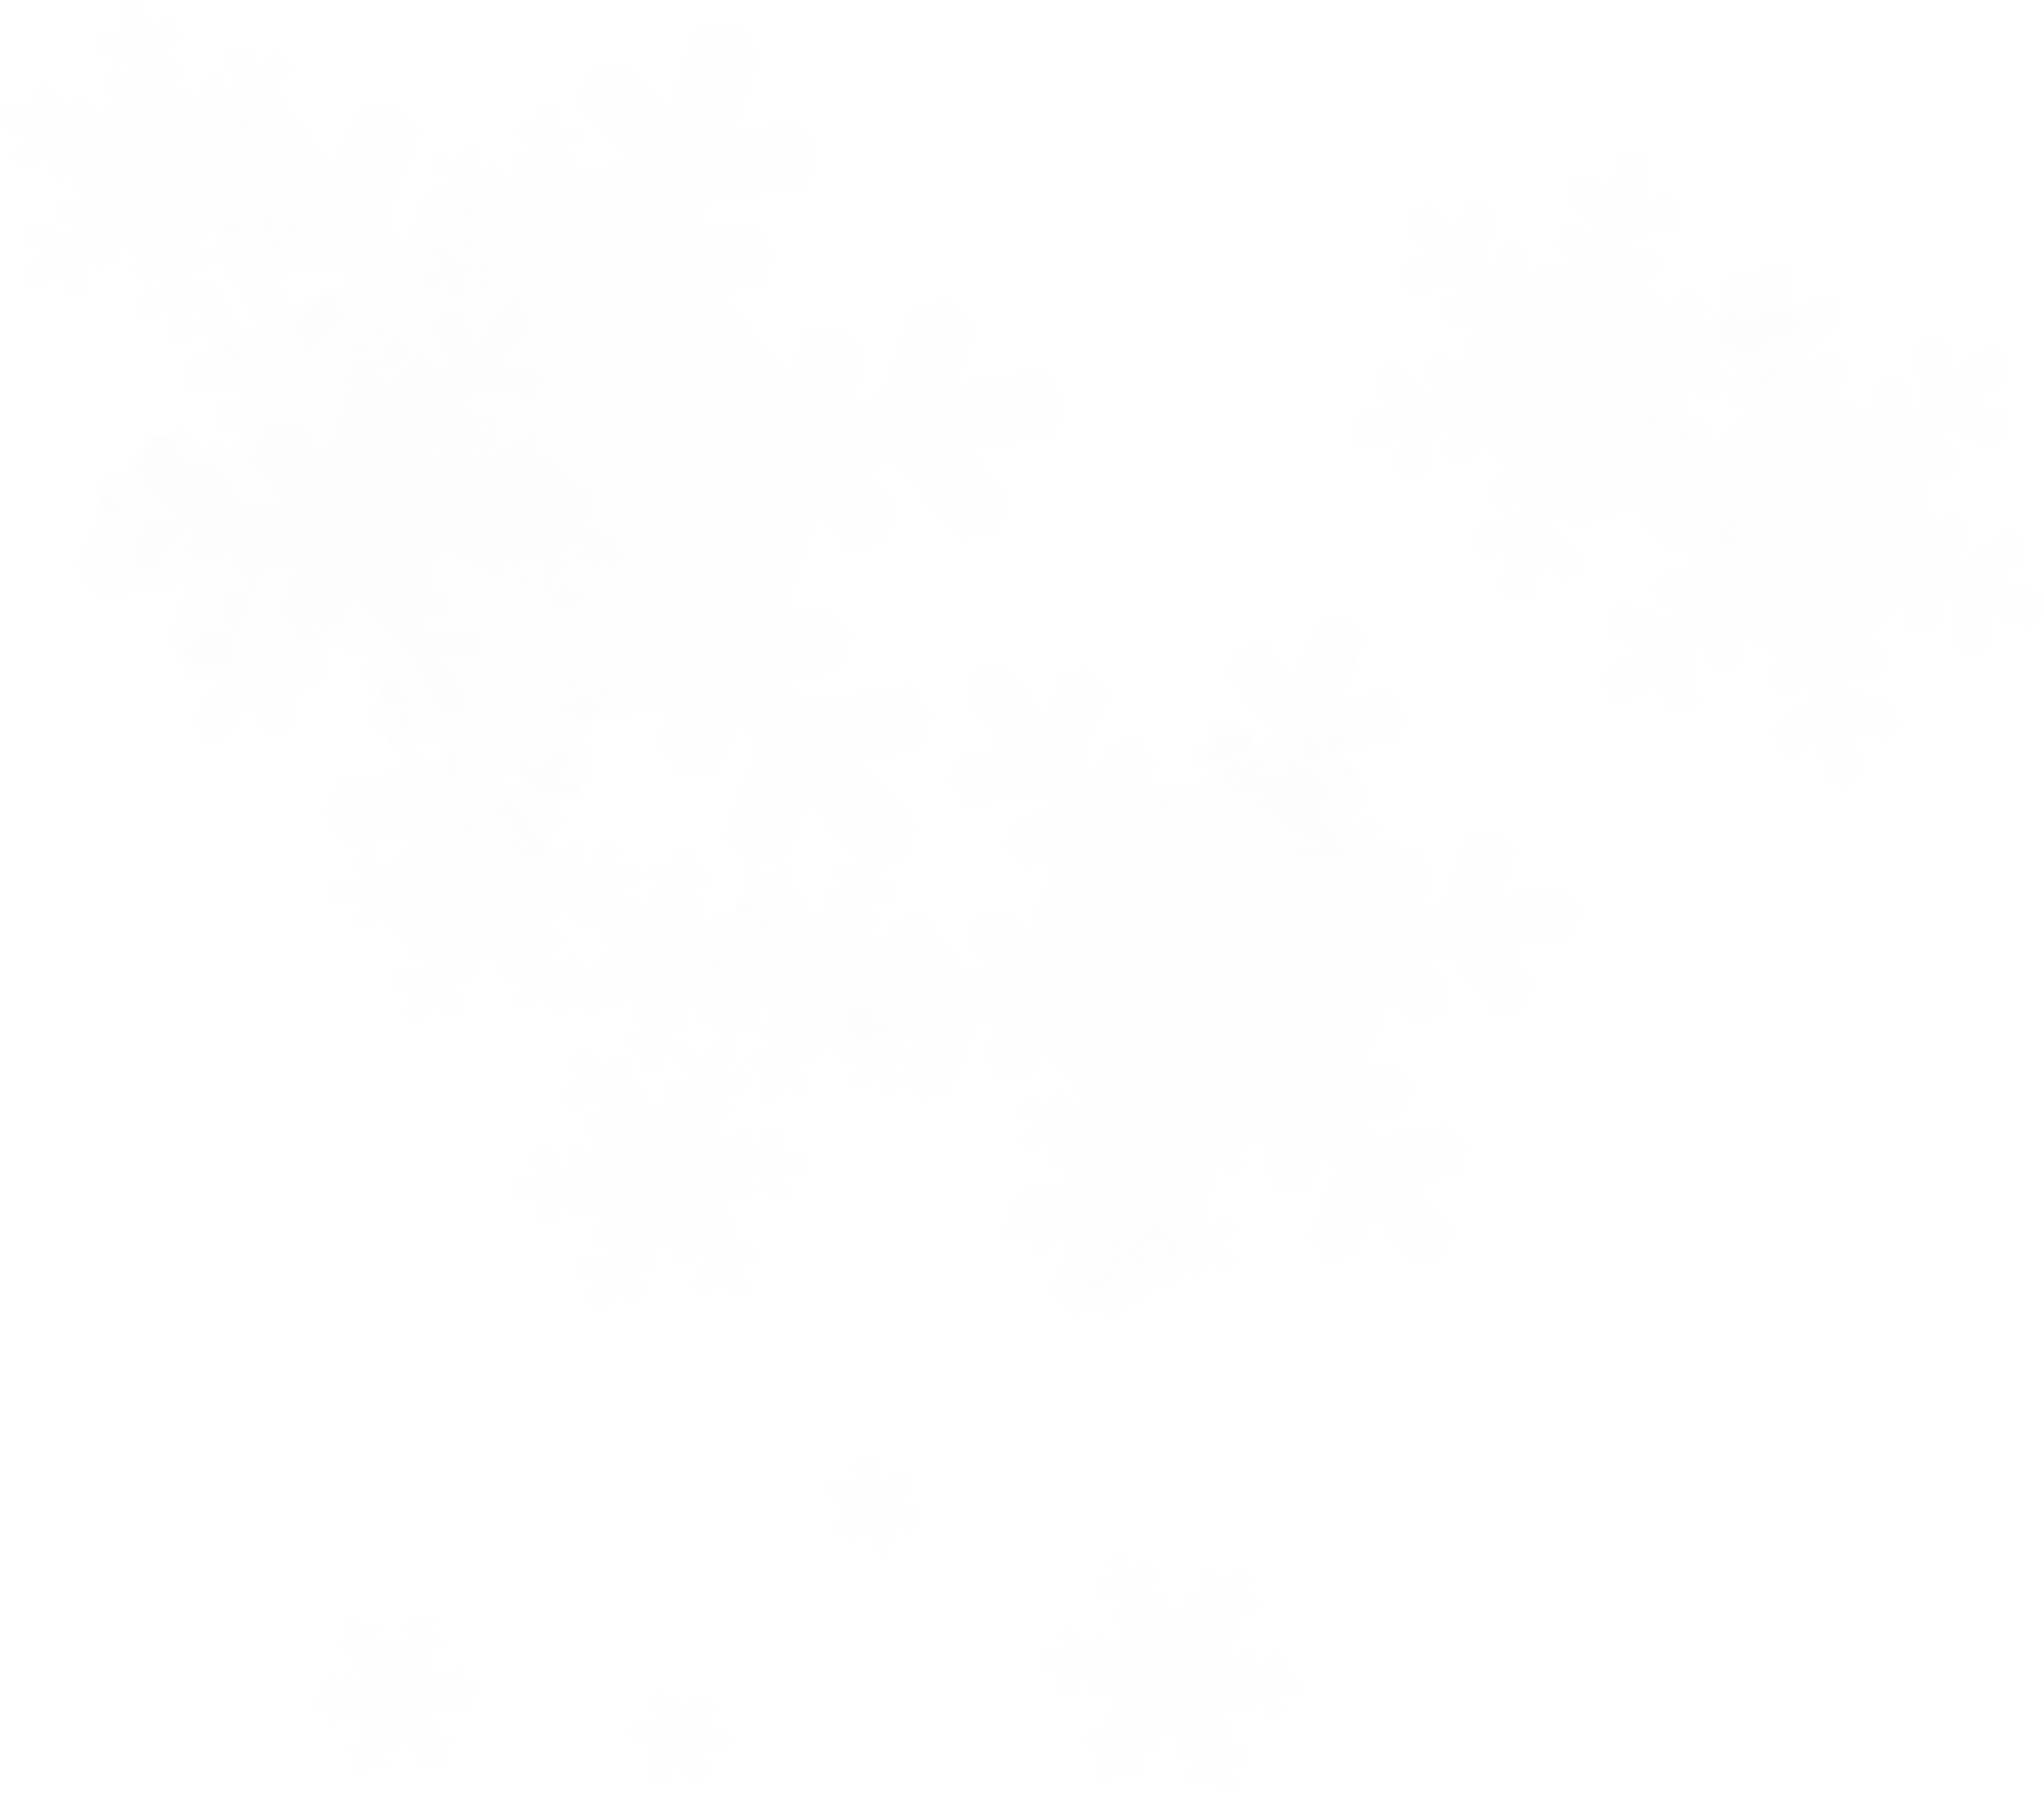 Snow border png. Snowflakes images free download